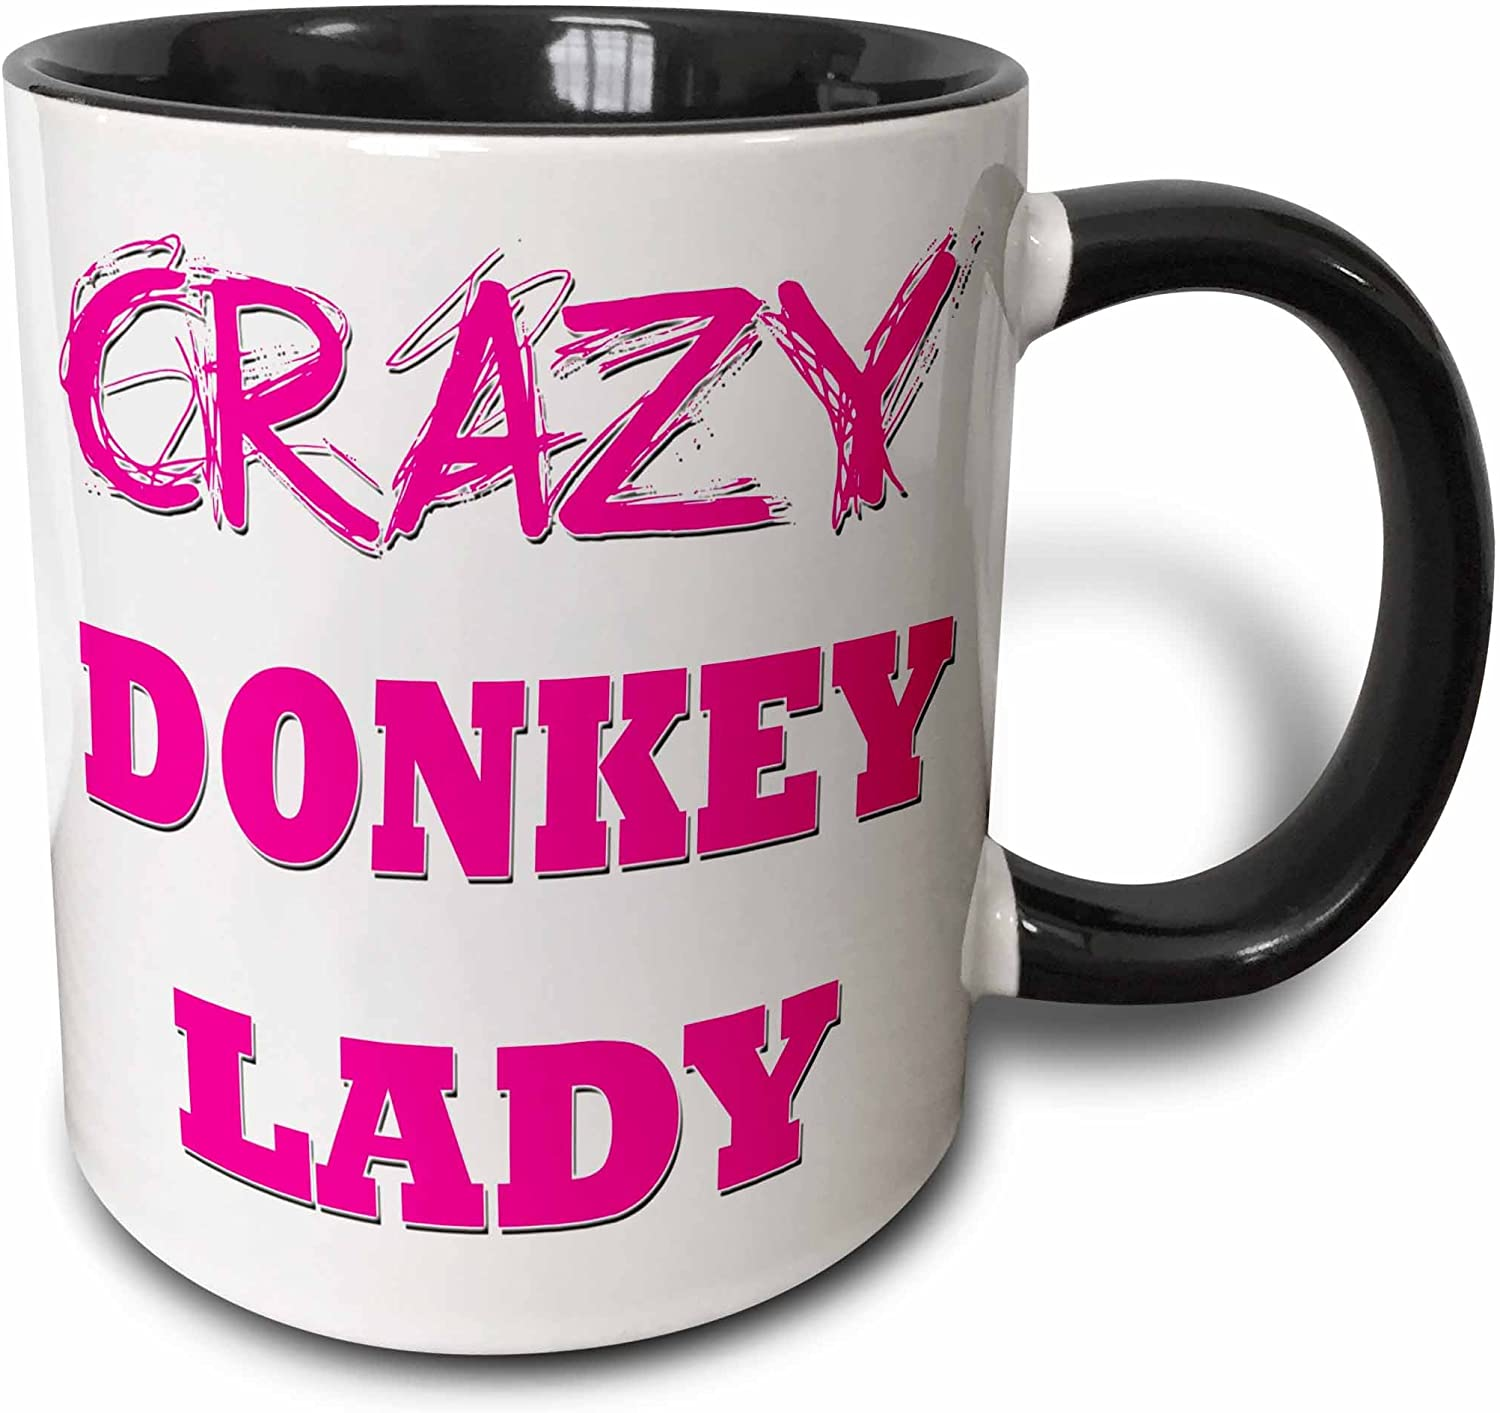 Crazy Donkey Lady mug with pink lettering.